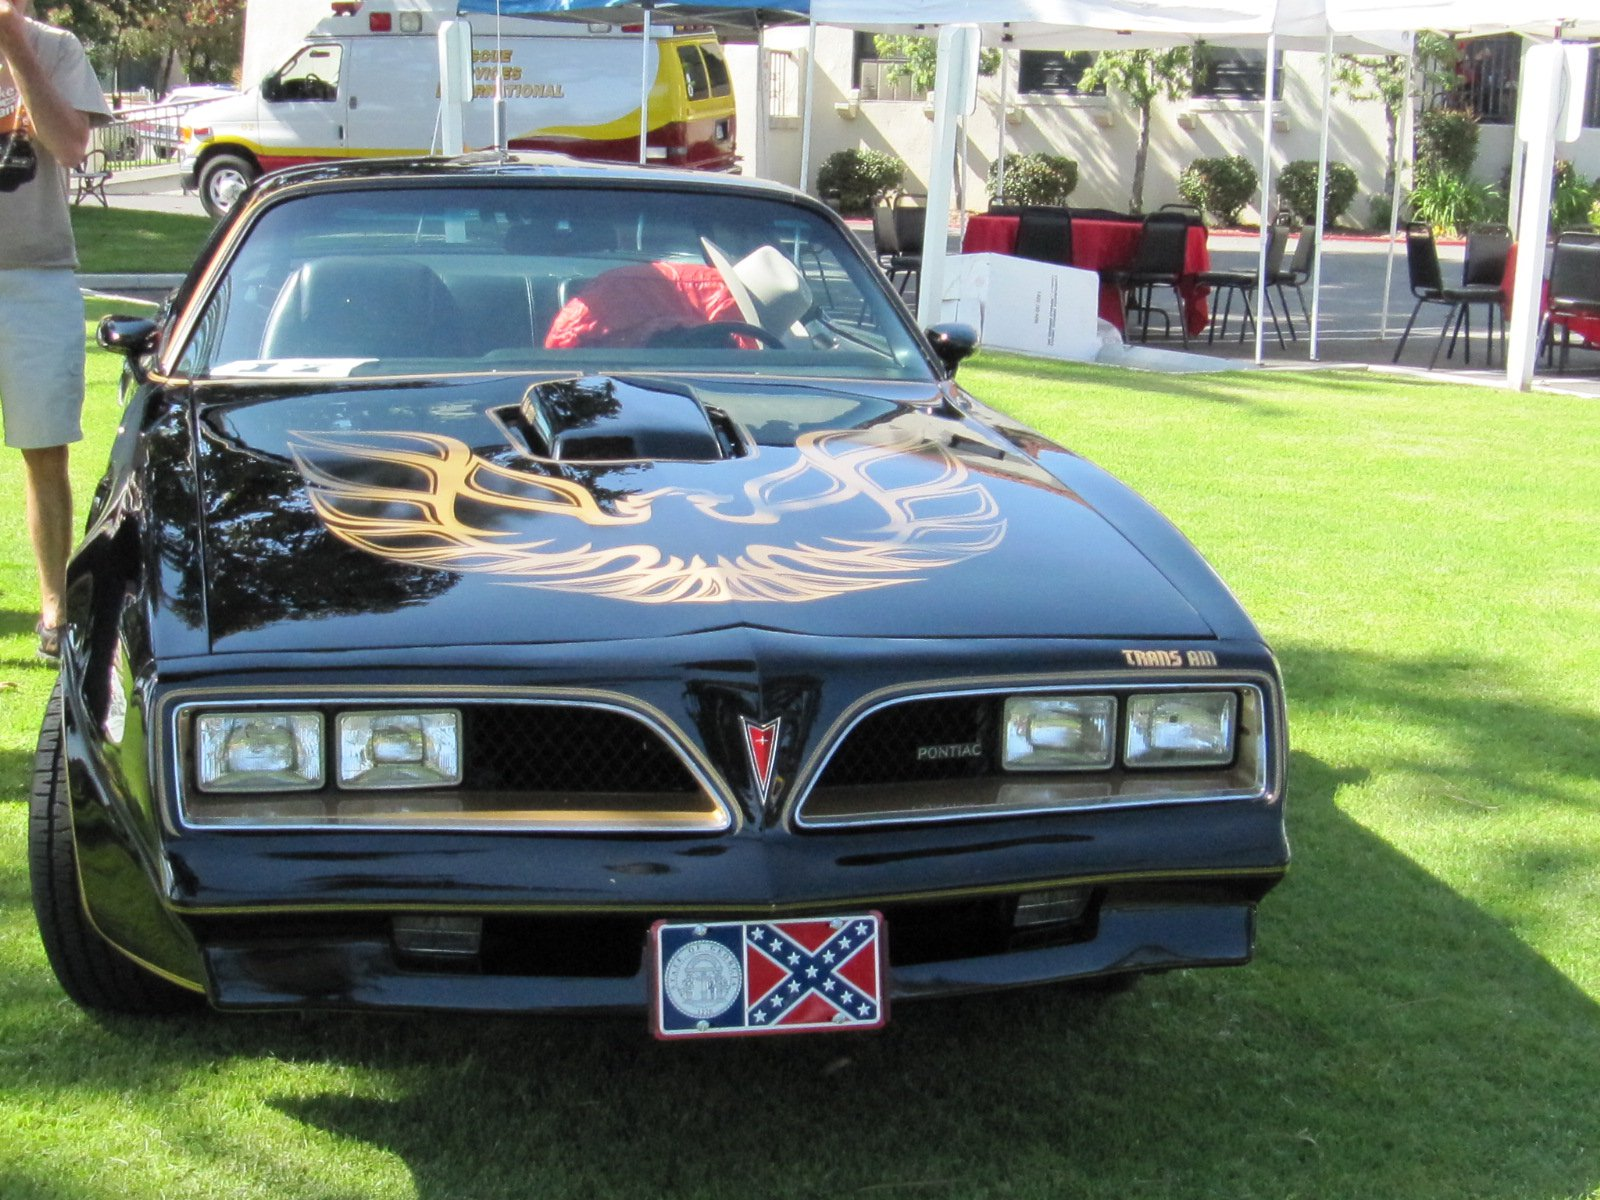 smokey and the bandit star car central famous movie